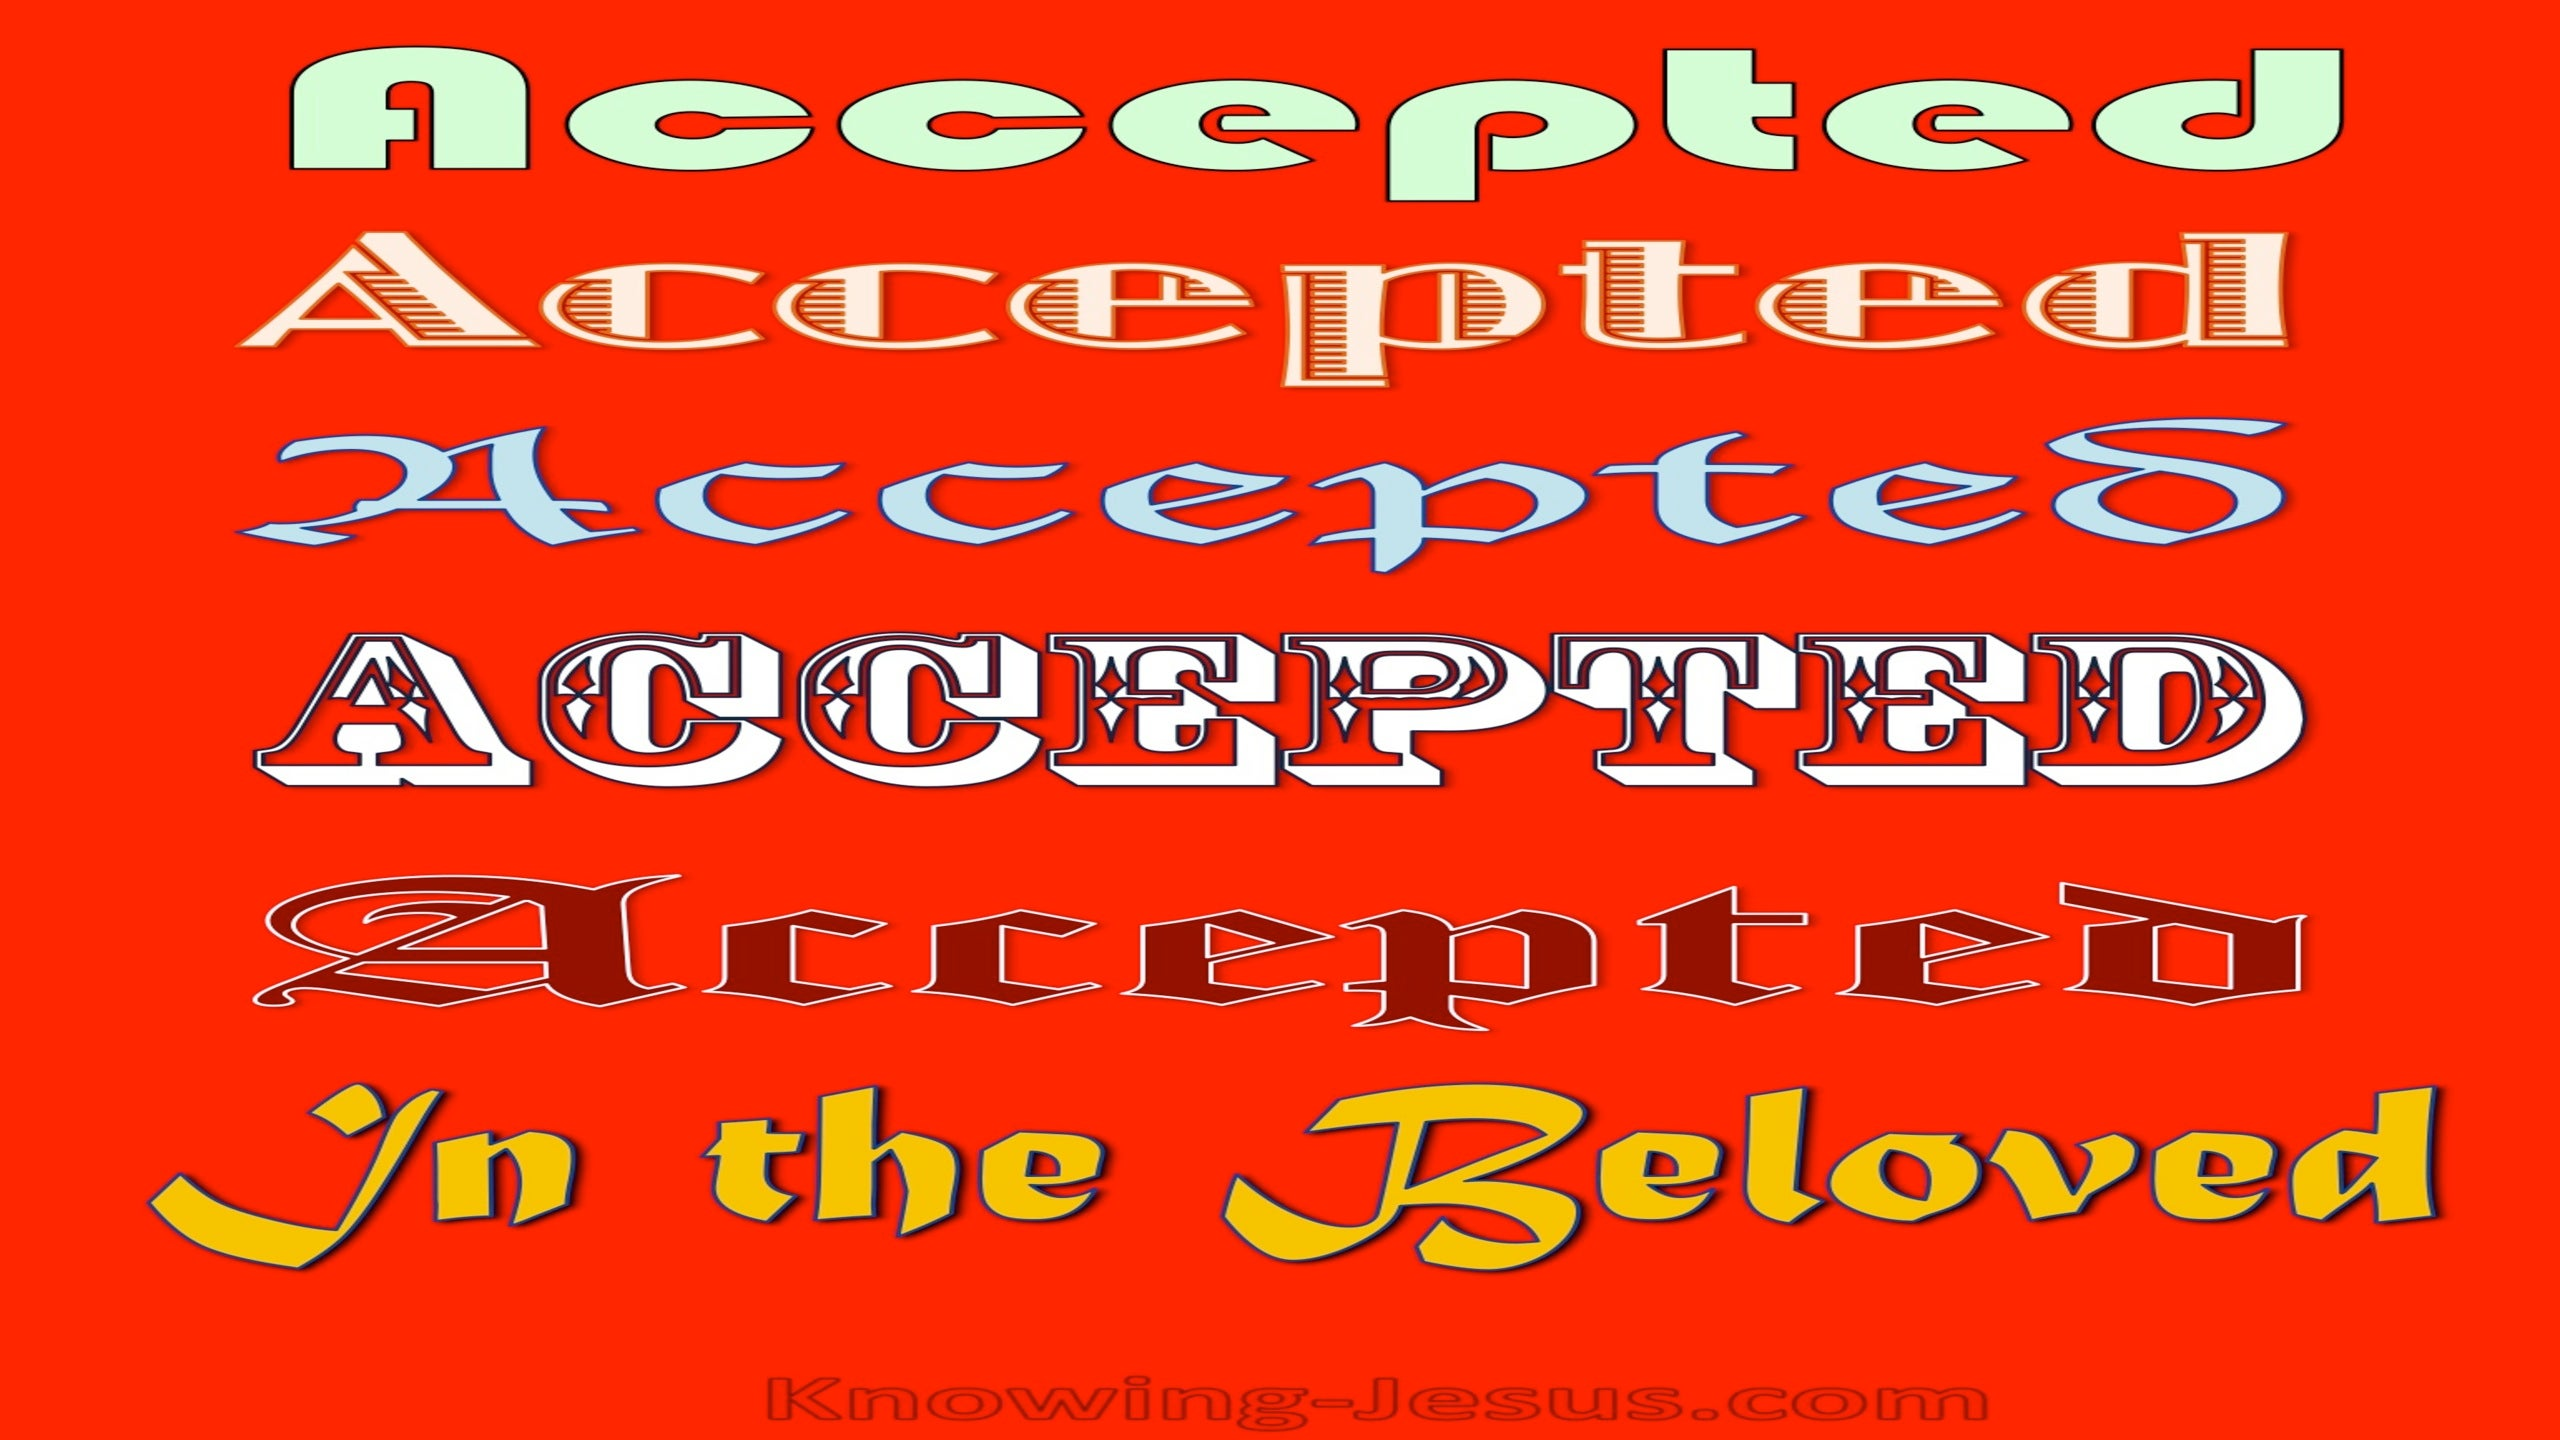 Ephesians 1:6 Accepted in the Beloved (devotional)12-11 (red)